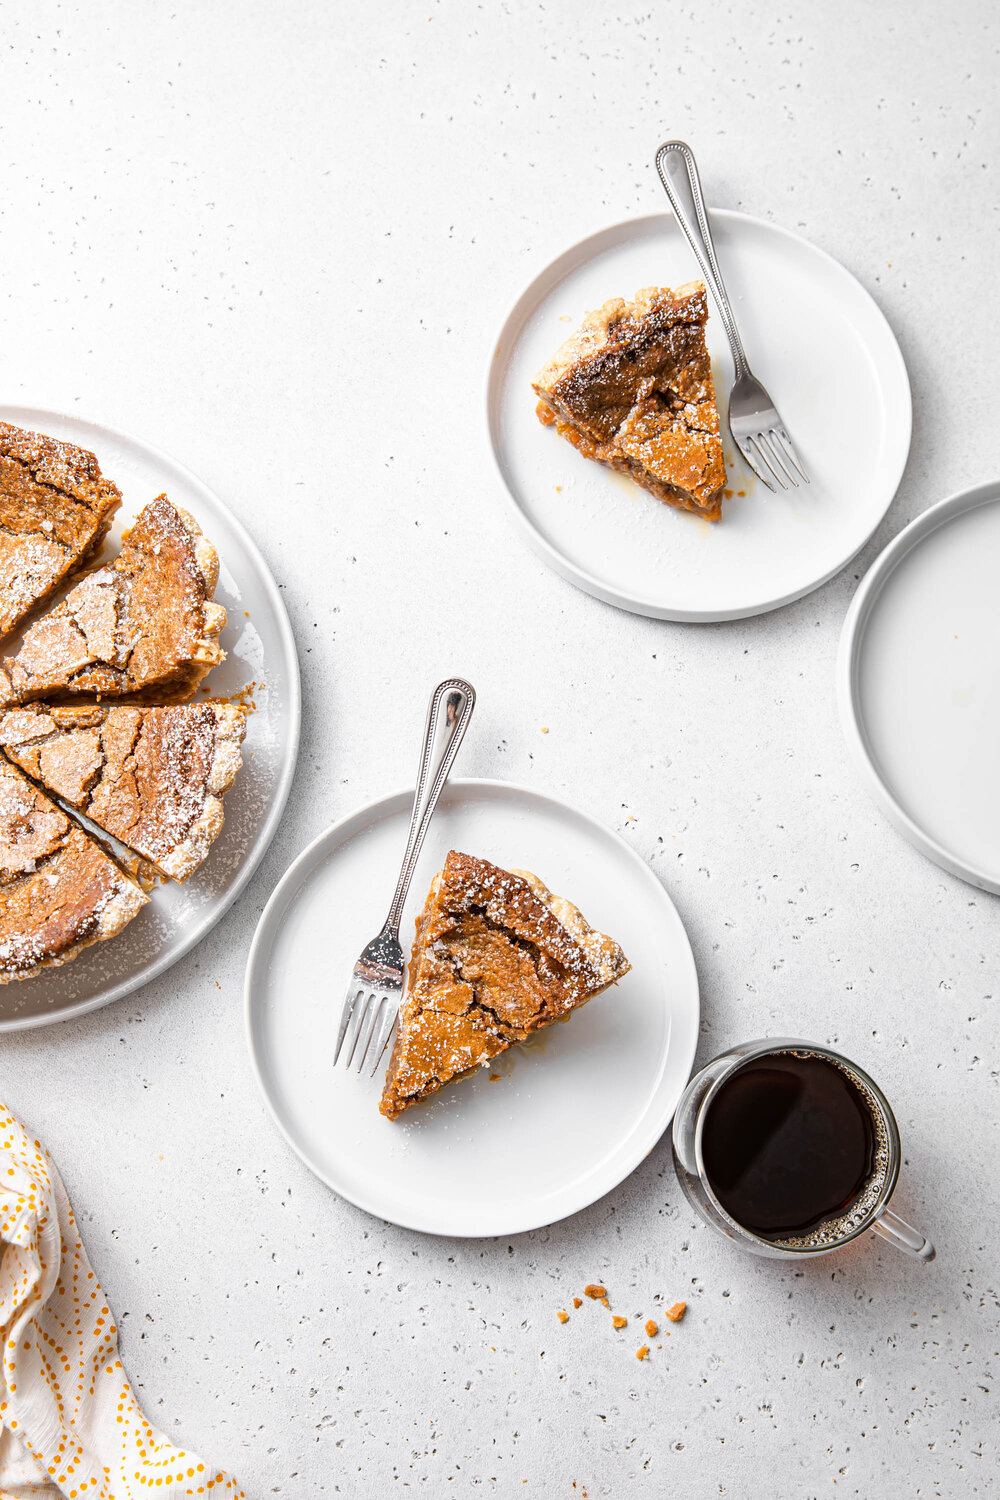 Slices of French Canadian Maple Sugar Pie with powdered sugar on top and a side of coffee.